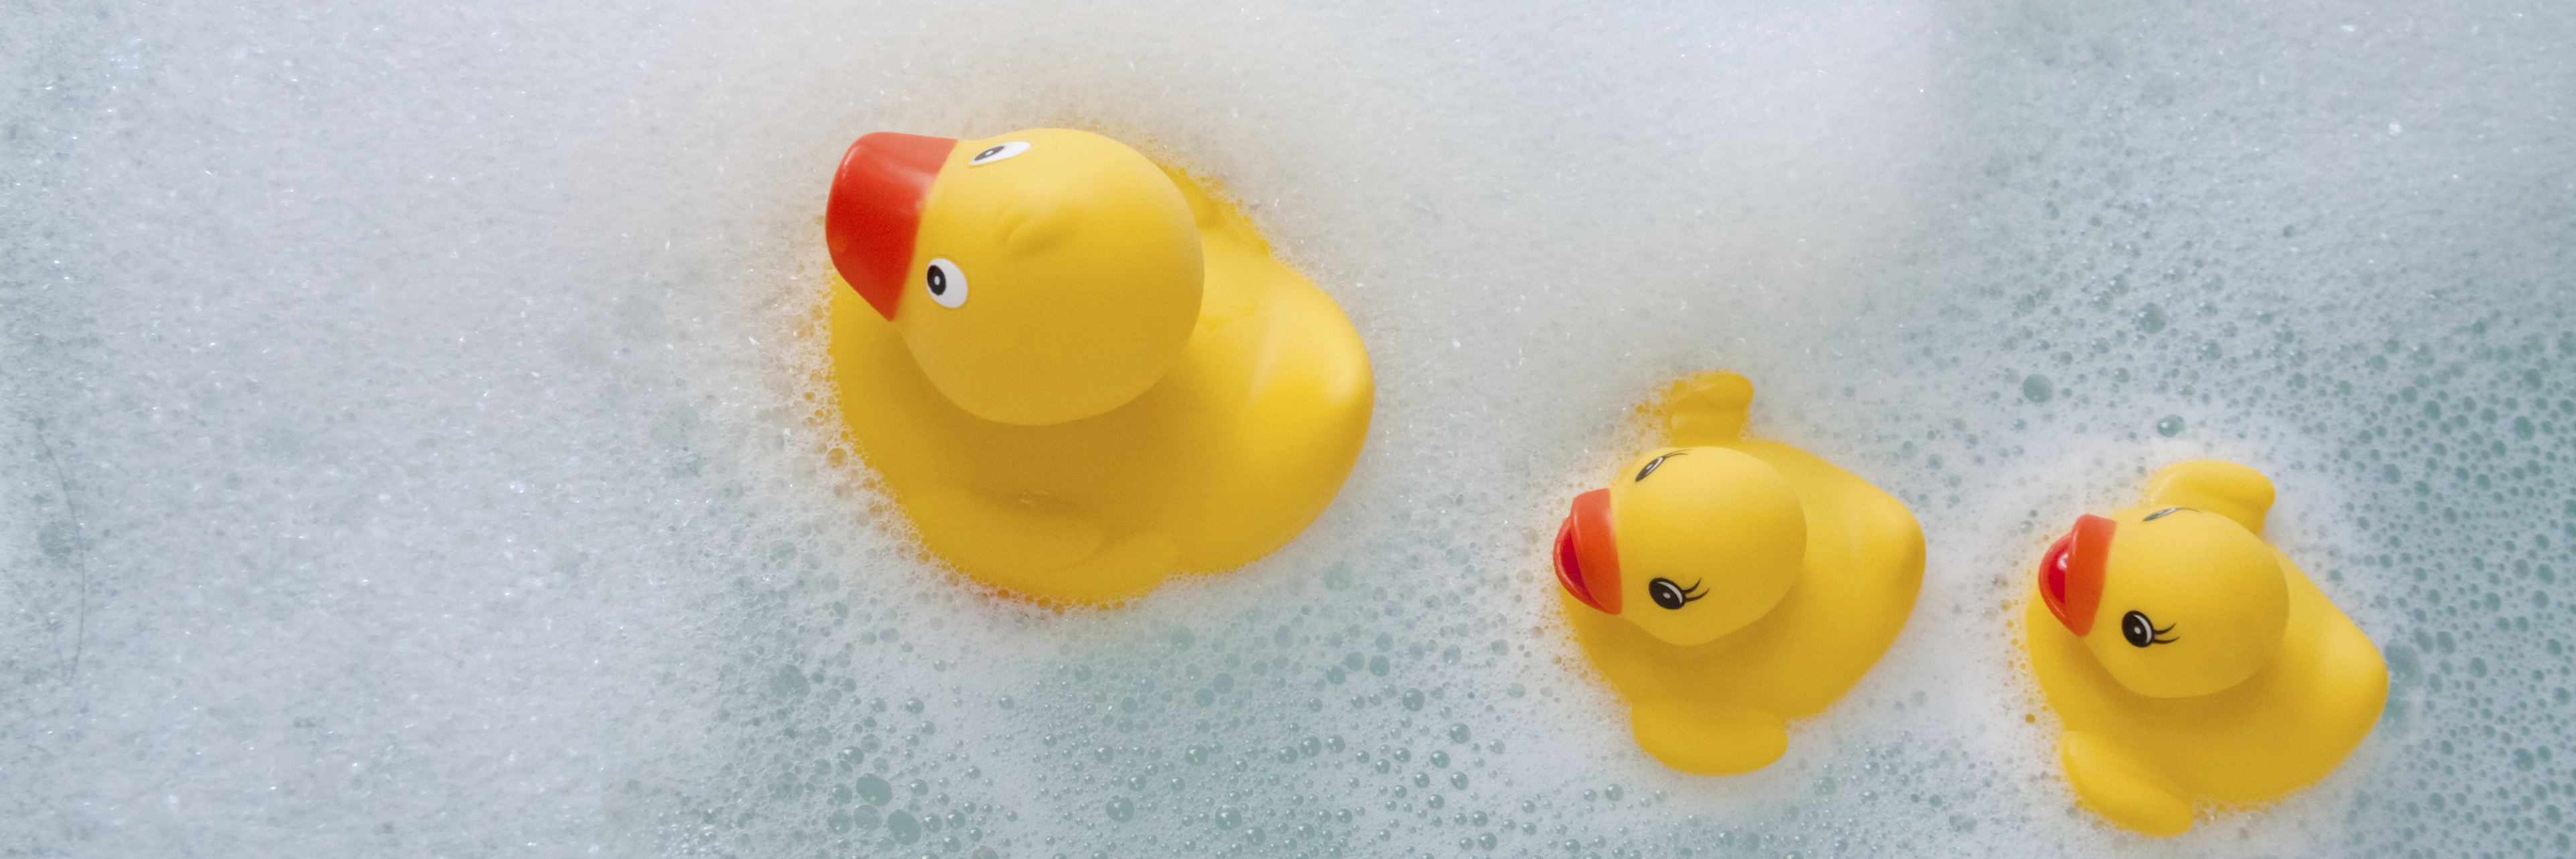 3 rubber ducks of different sizes floating in soapy bath water